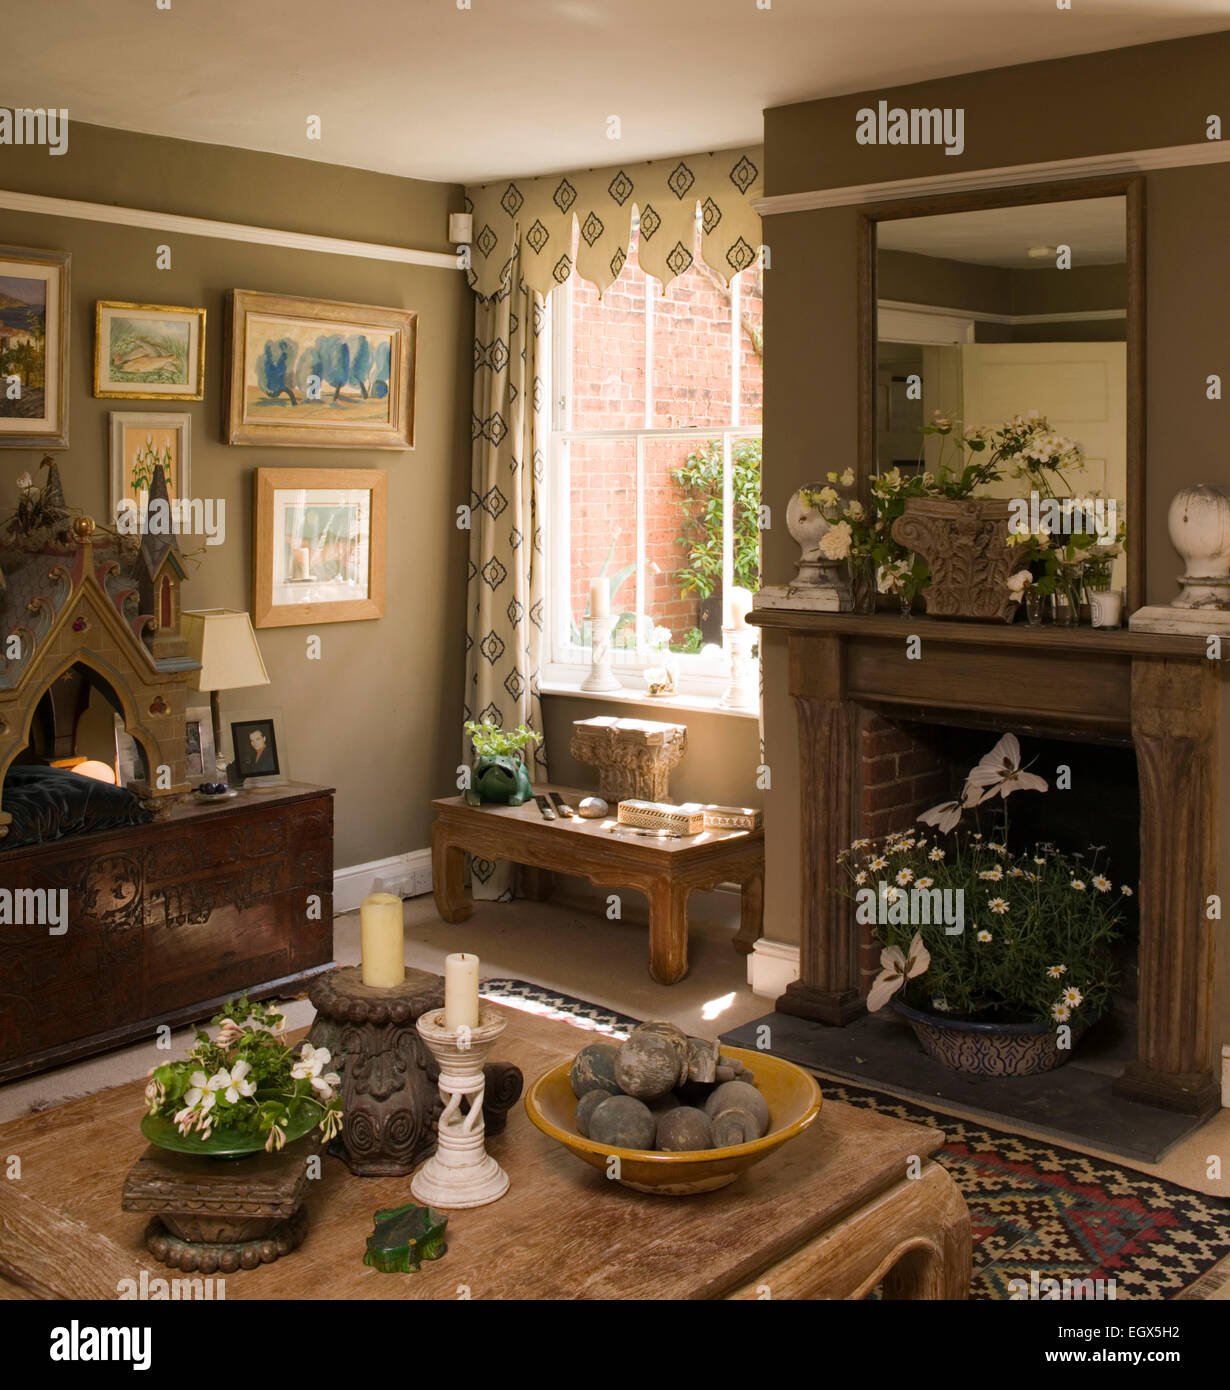 interiors living rooms fireplace traditional stock photos